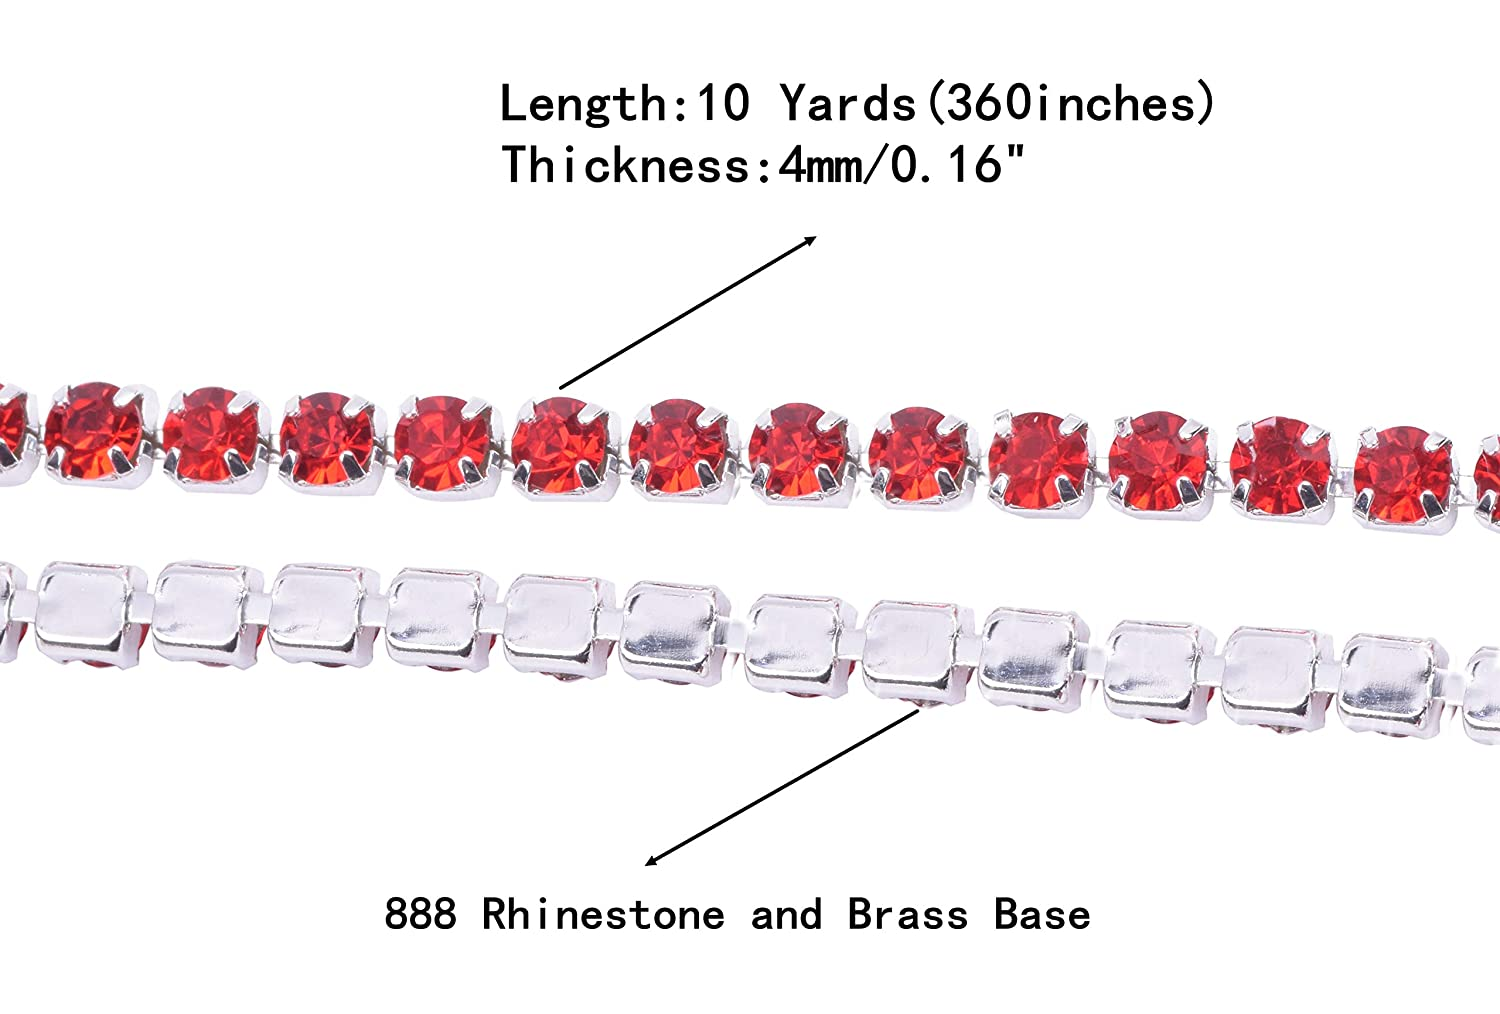 KAOYOO 1 Roll 10 Yards Crystal Rhinestone Close Chain Trim SS16//4.0mm Silver Chain with Light Violet Crystal Beads